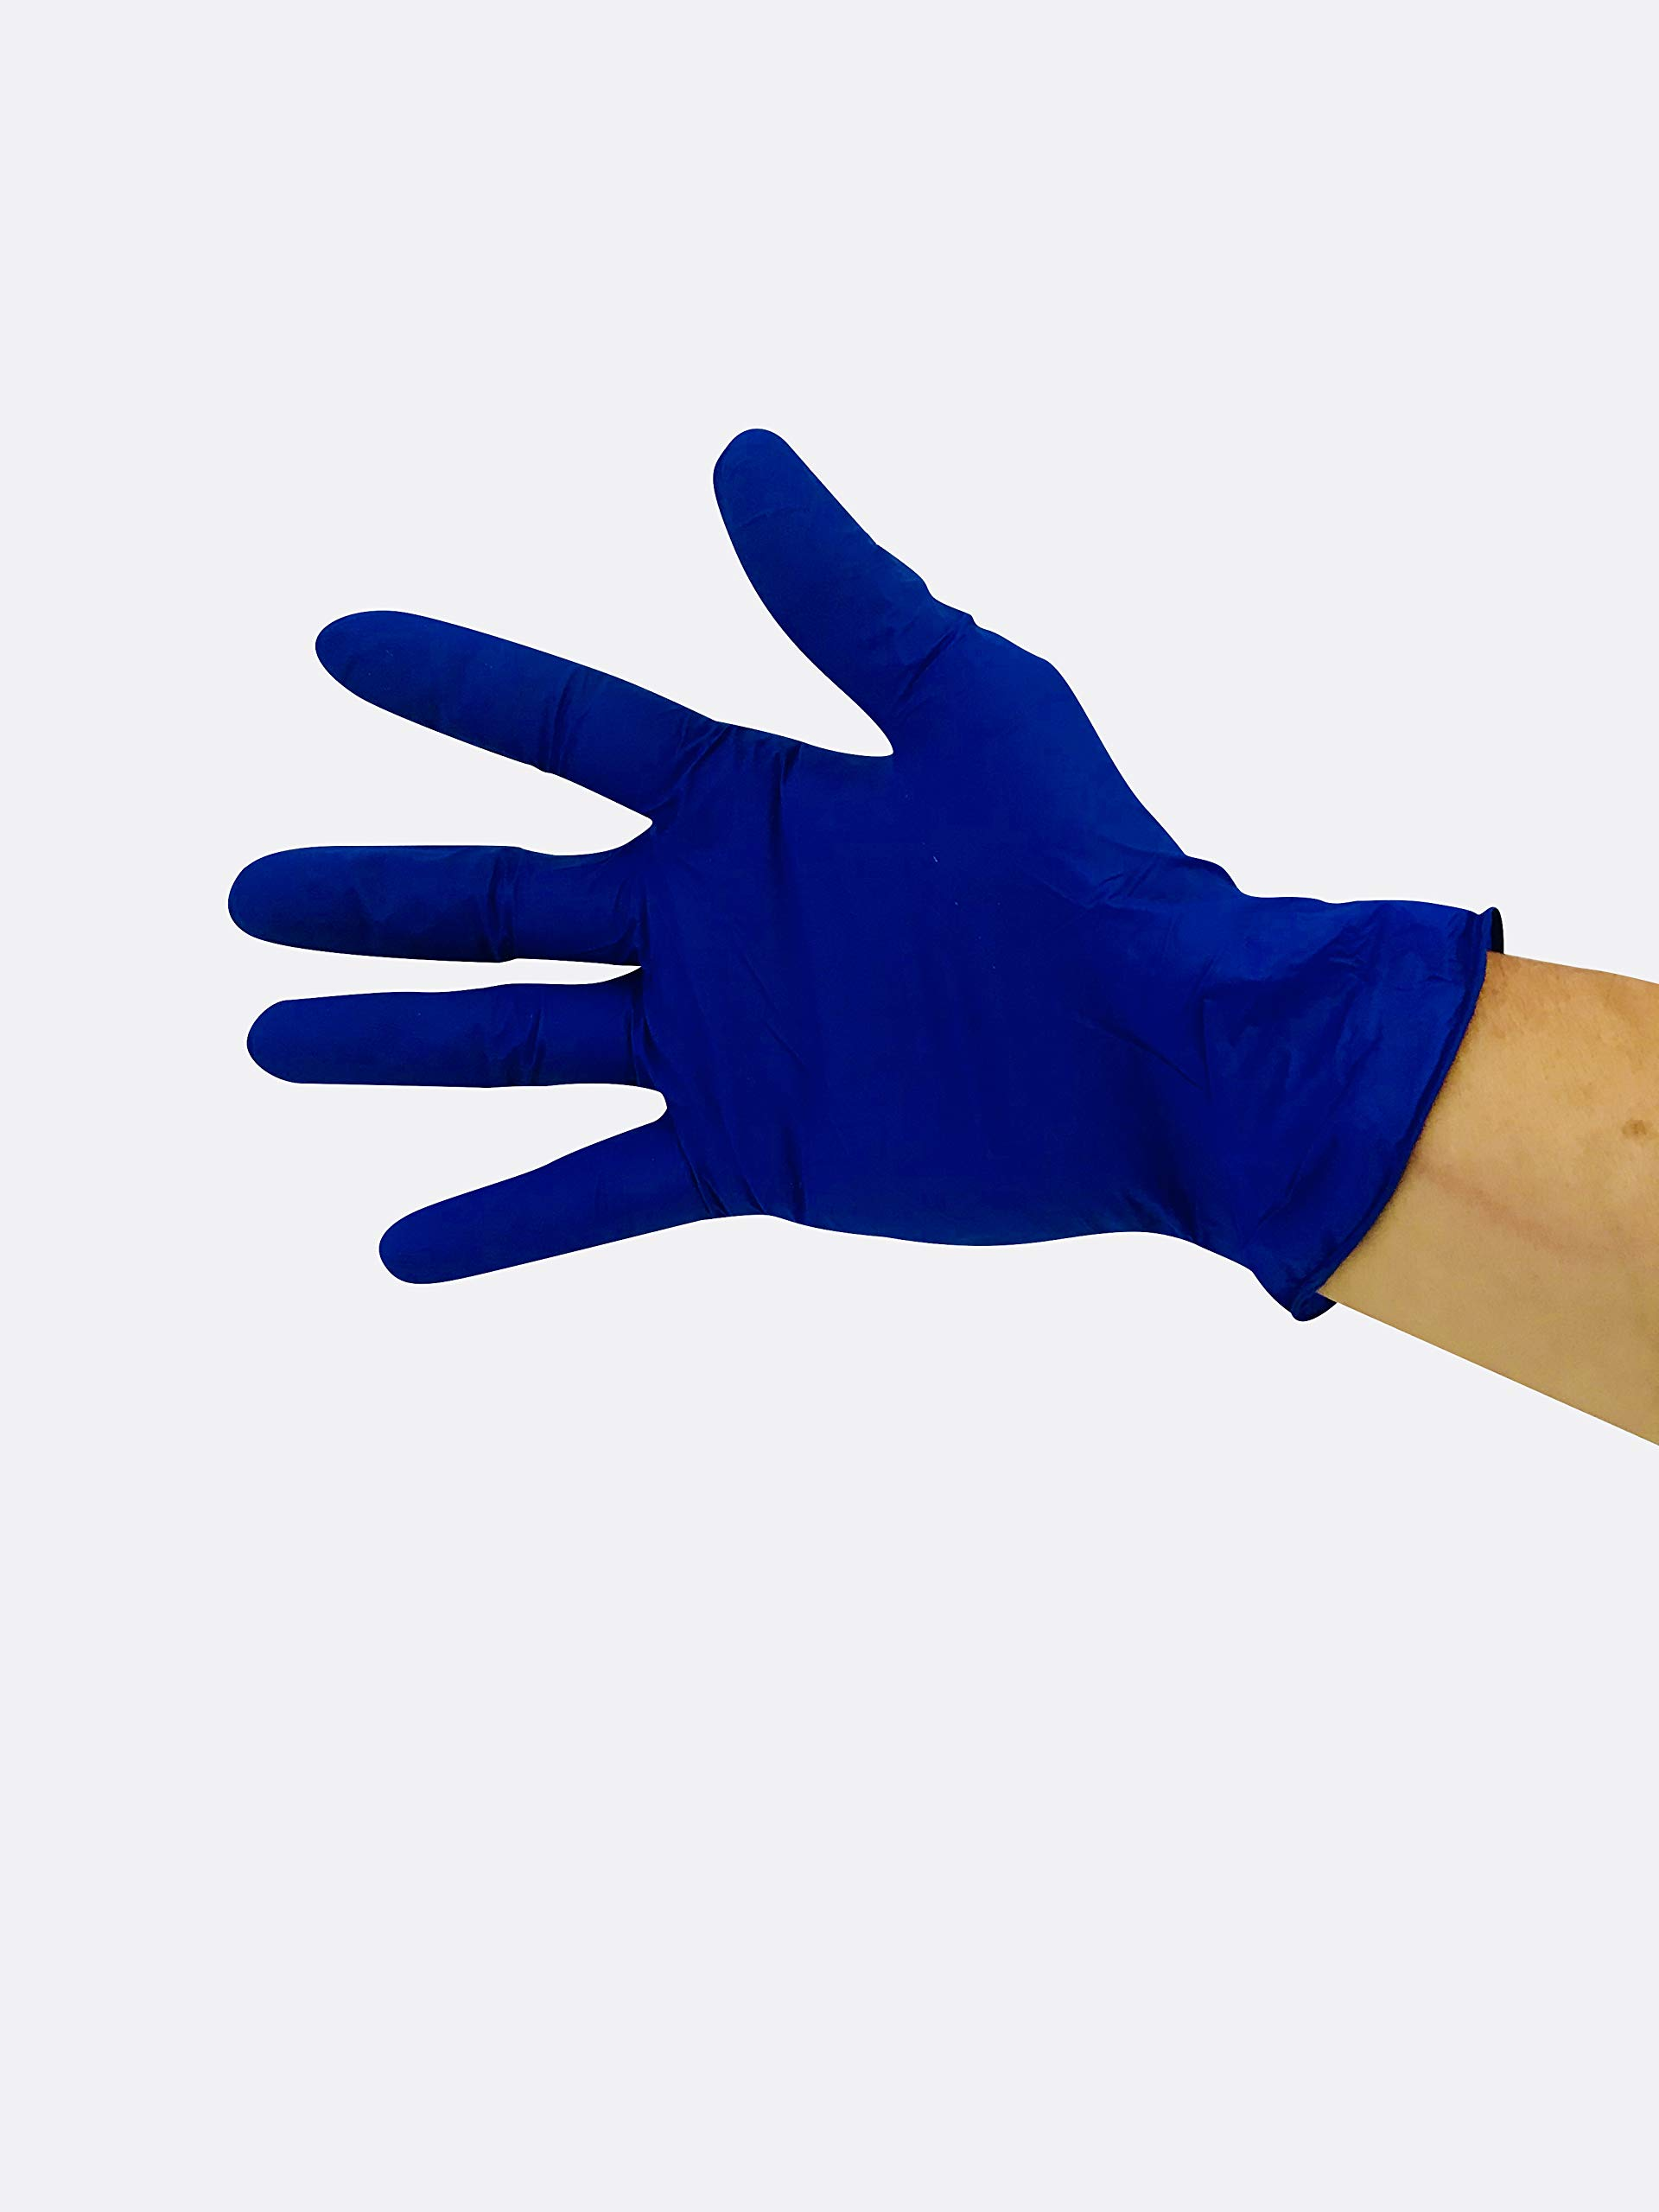 KingSeal UltraBlue Cobalt Indigo Blue Disposable Gloves, 4 mil, Latex-Free, Textured, Size X-Large - 4 boxes of 100 each (400pcs total) by KingSeal (Image #3)